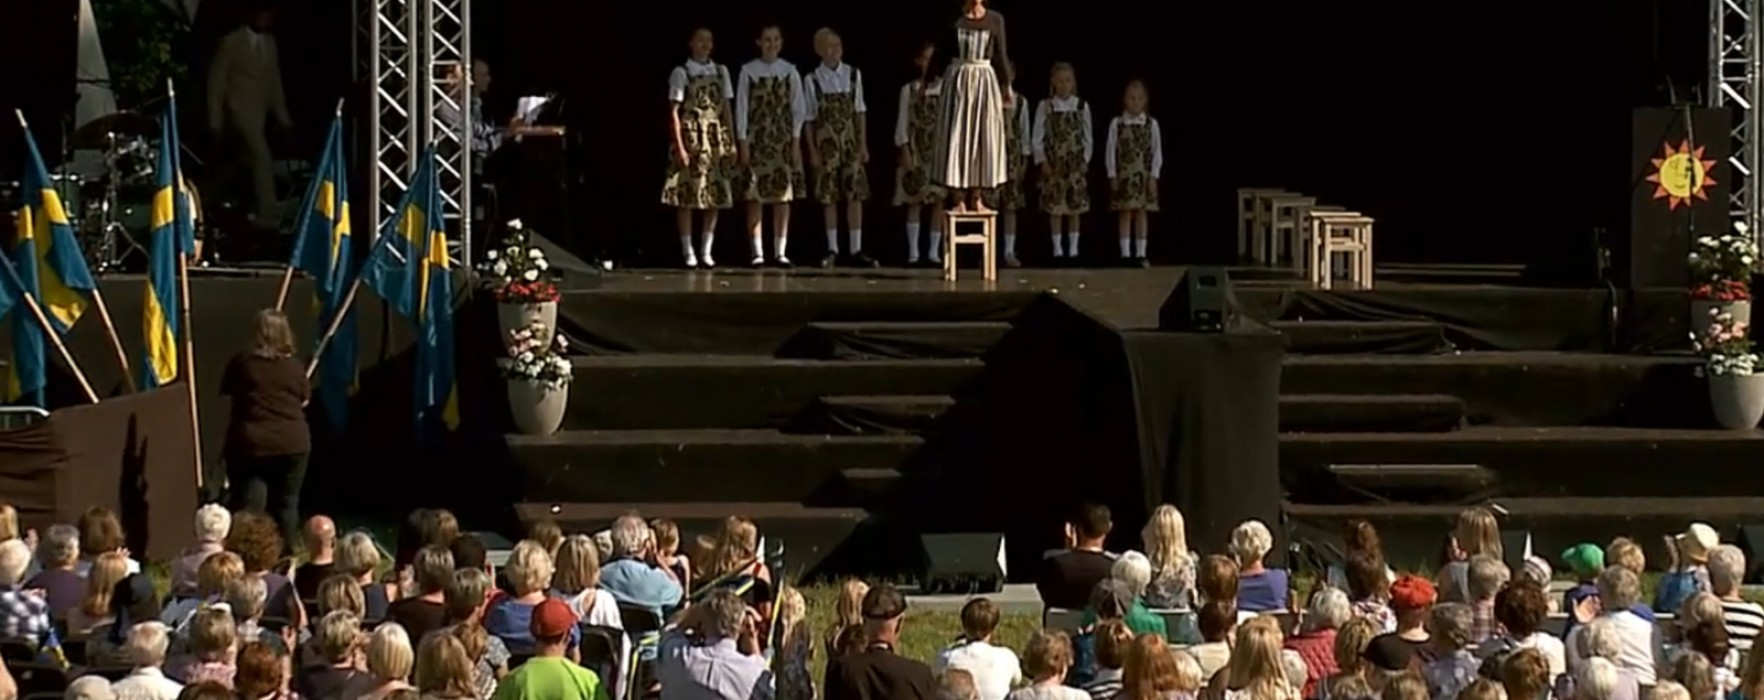 The Sound of Music på Scalateatern